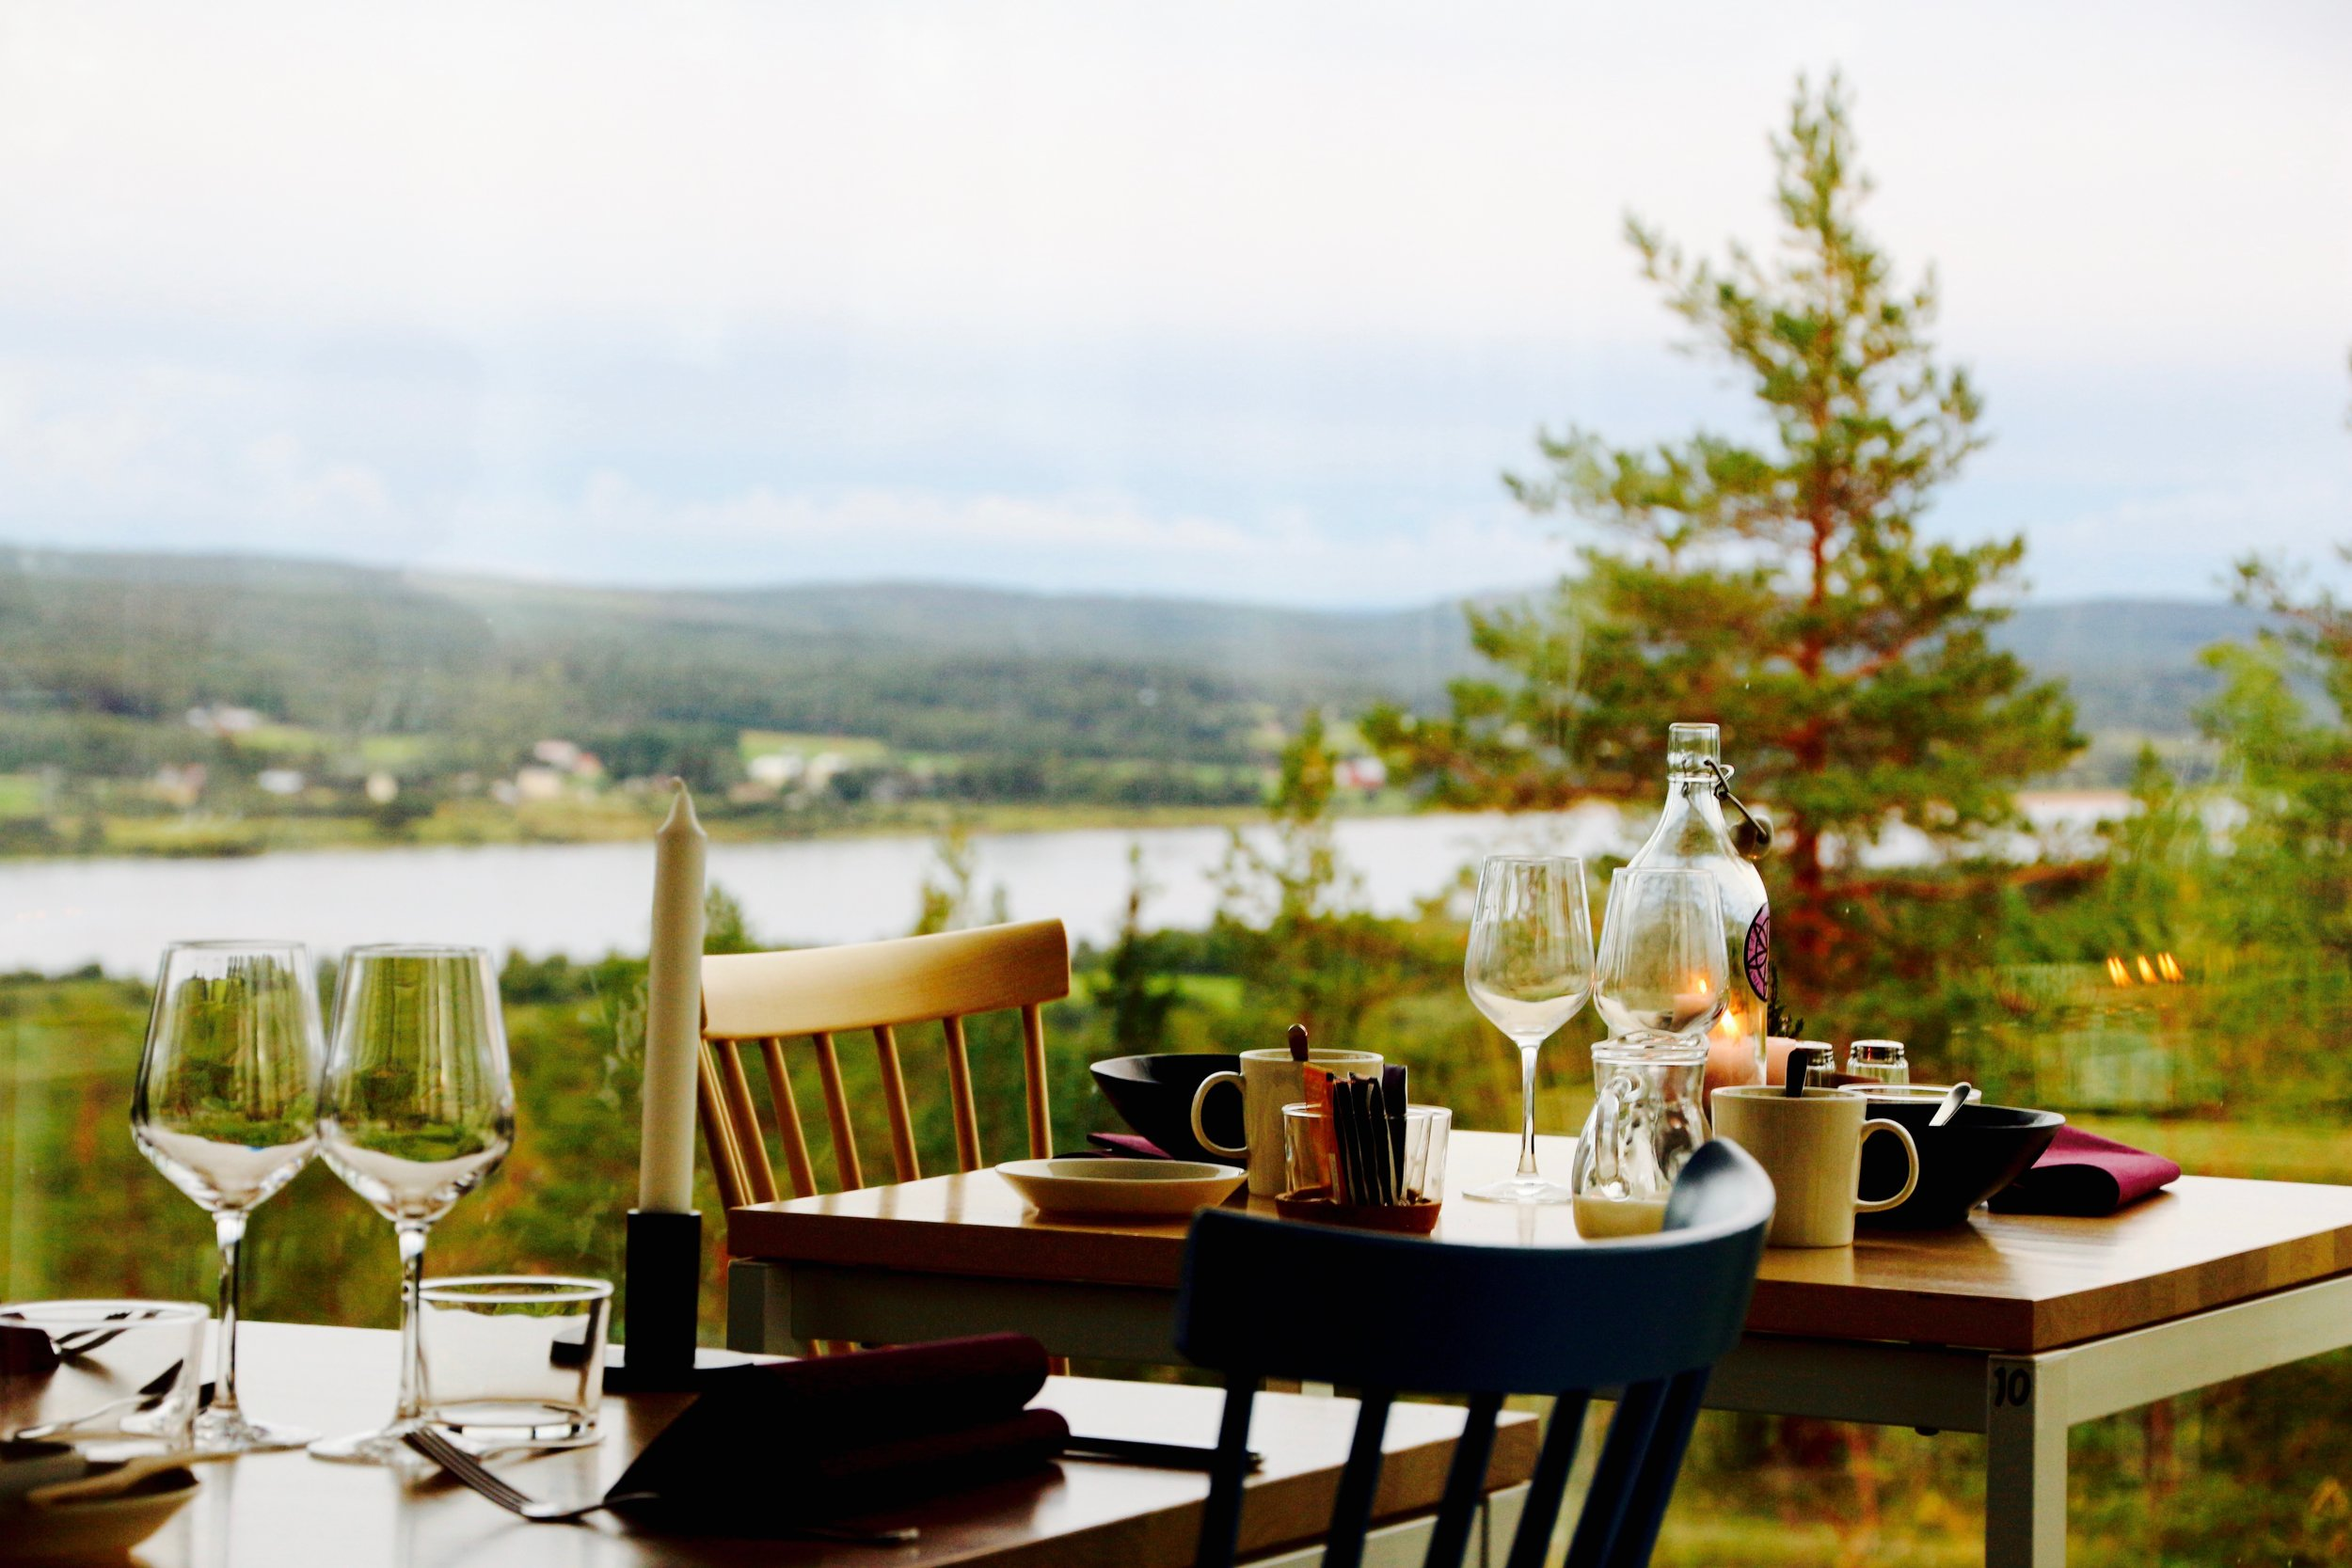 1343_Restaurang Utblick_Luppioberget_Swedish Lapland_Food with a view_Photo Pia Huuva.jpg